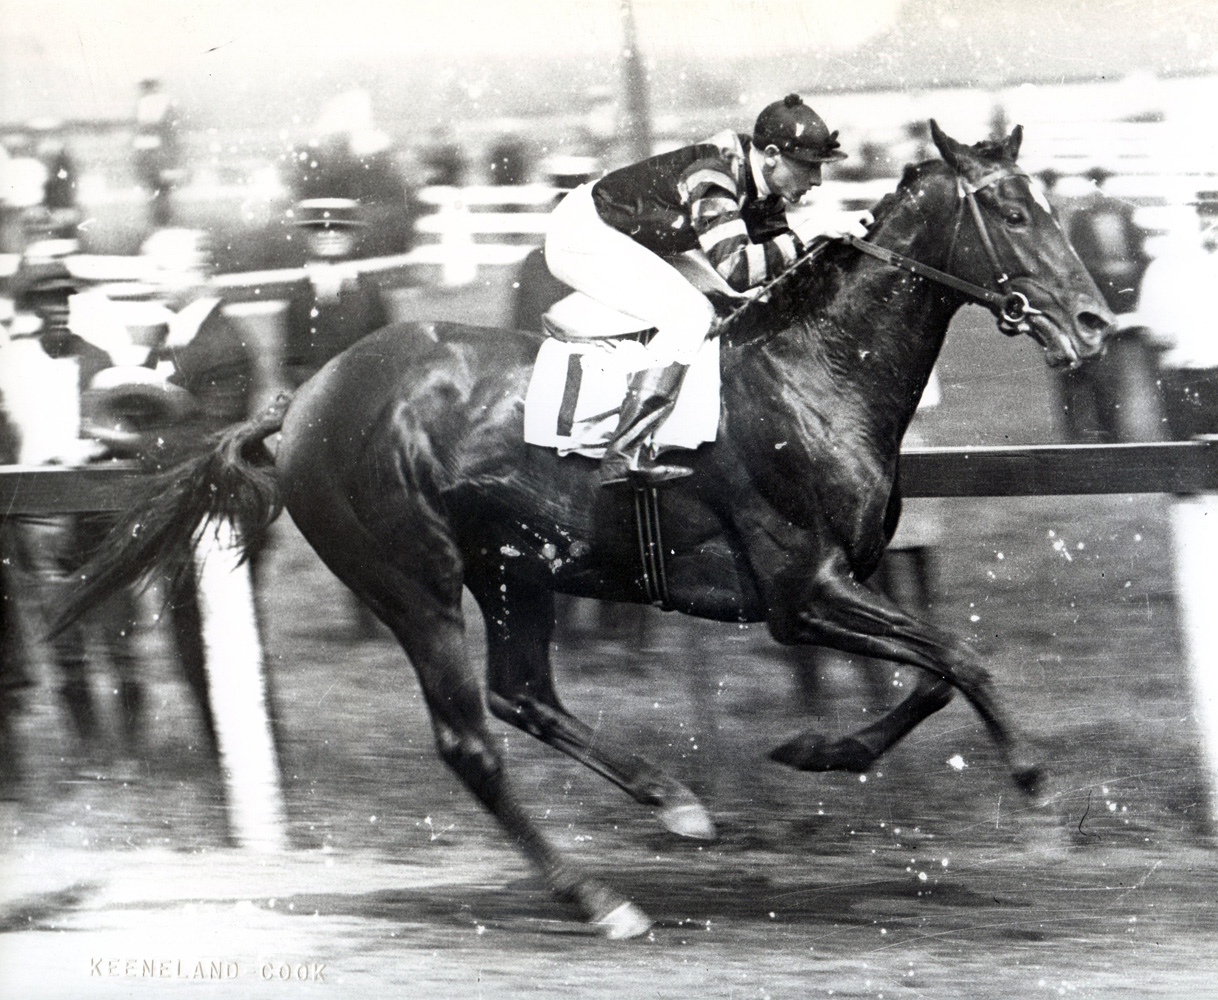 Clarence Kummer and Man o' War winning the 1920 Dwyer Stakes at Aqueduct (Keeneland Library Cook Collection/Museum Collection)